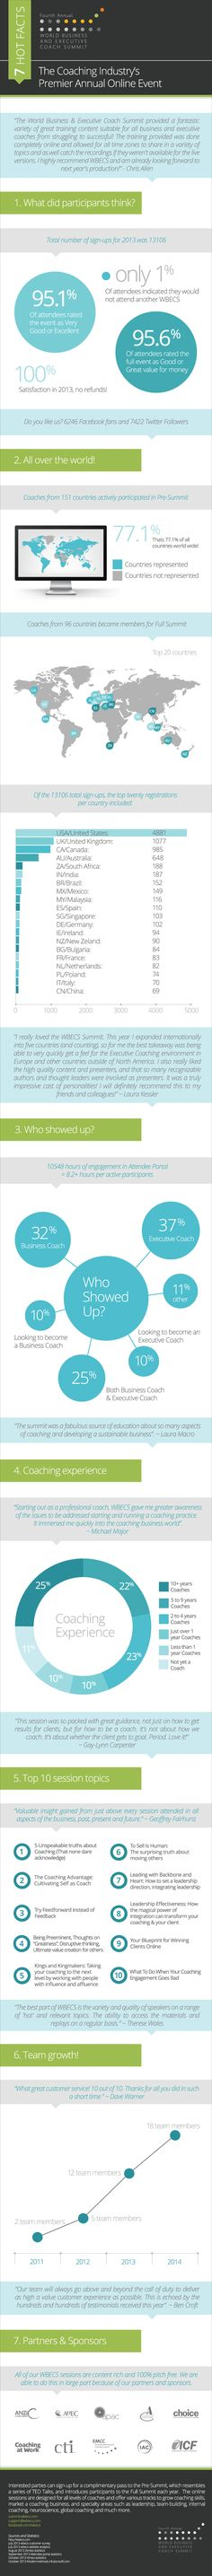 http://www.wbecs.com/wbecs2014/infographic/ Fourth Annual World Business and Executive Coach Summit - The Premier and Largest Event for the Coaching Industry. Sign up today for free complimentary sessions in May.